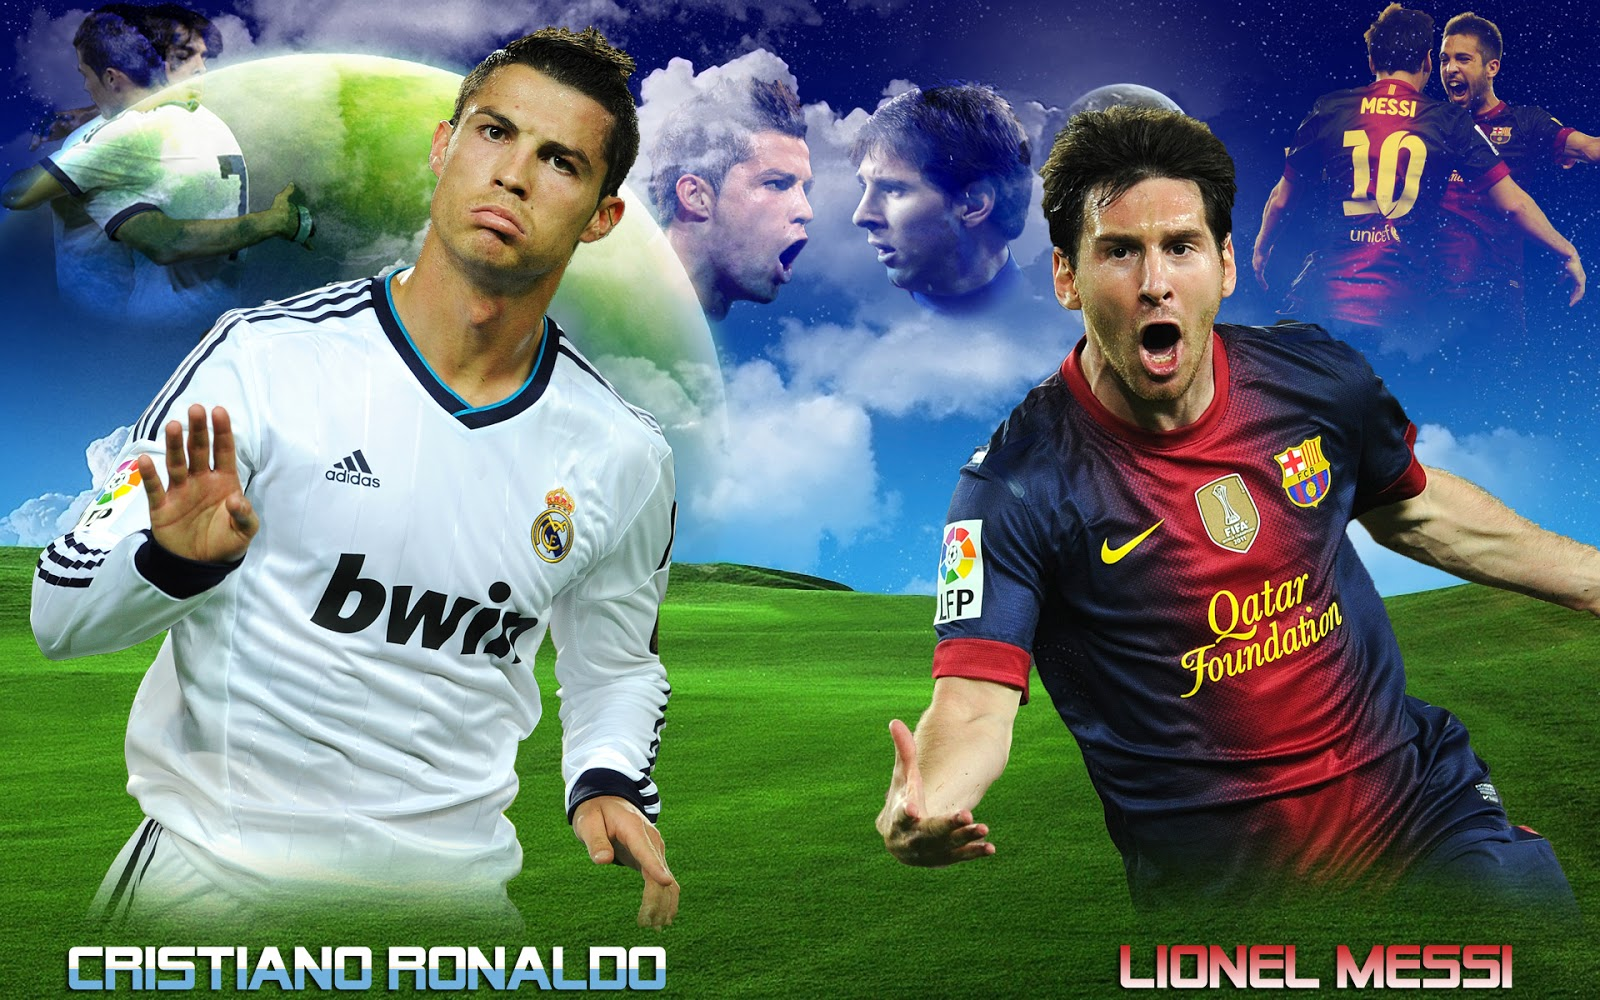 Cristiano Ronaldo Vs Lionel Messi New Nice Hd Wallpapers 2013